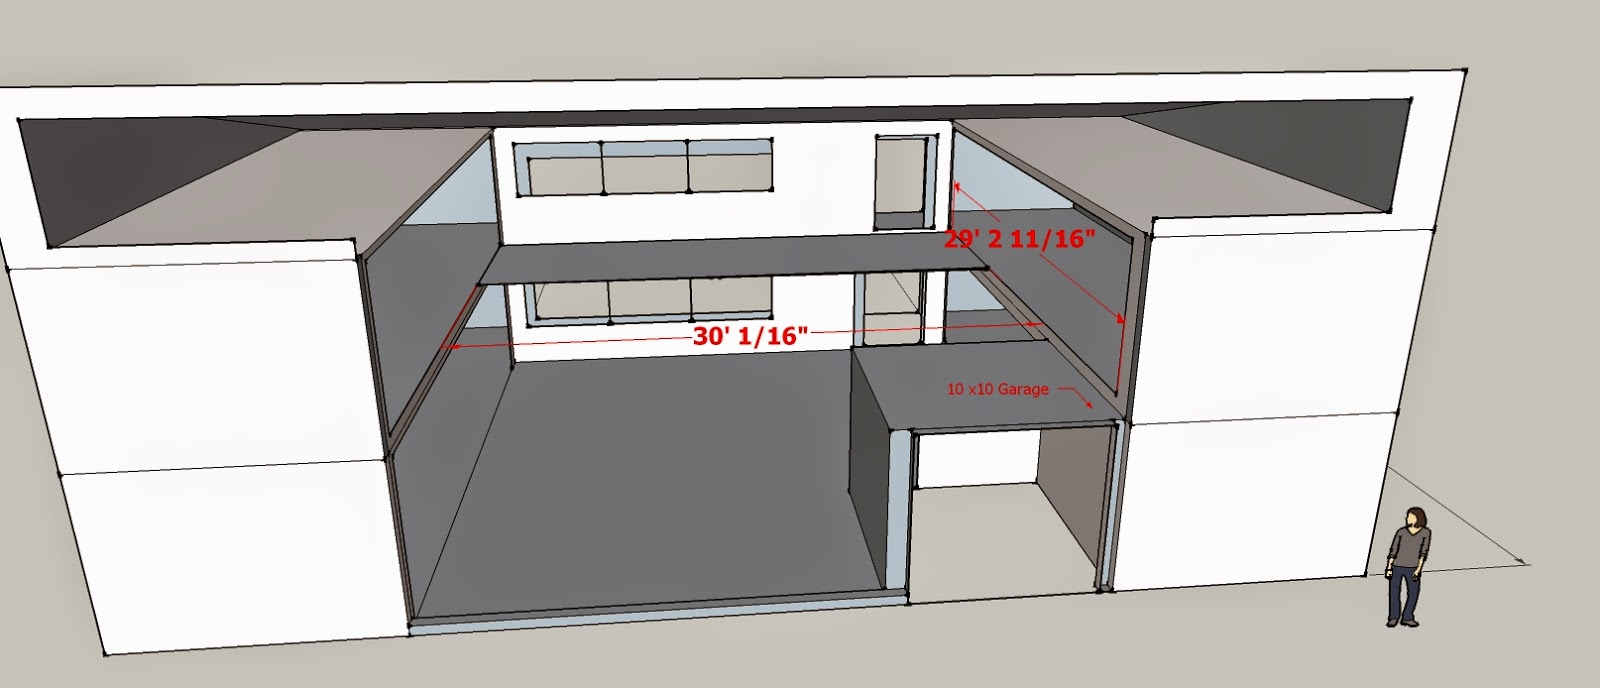 Design by Scott Net Zero 5 Container Open Floor Plan Shipping Container Layout